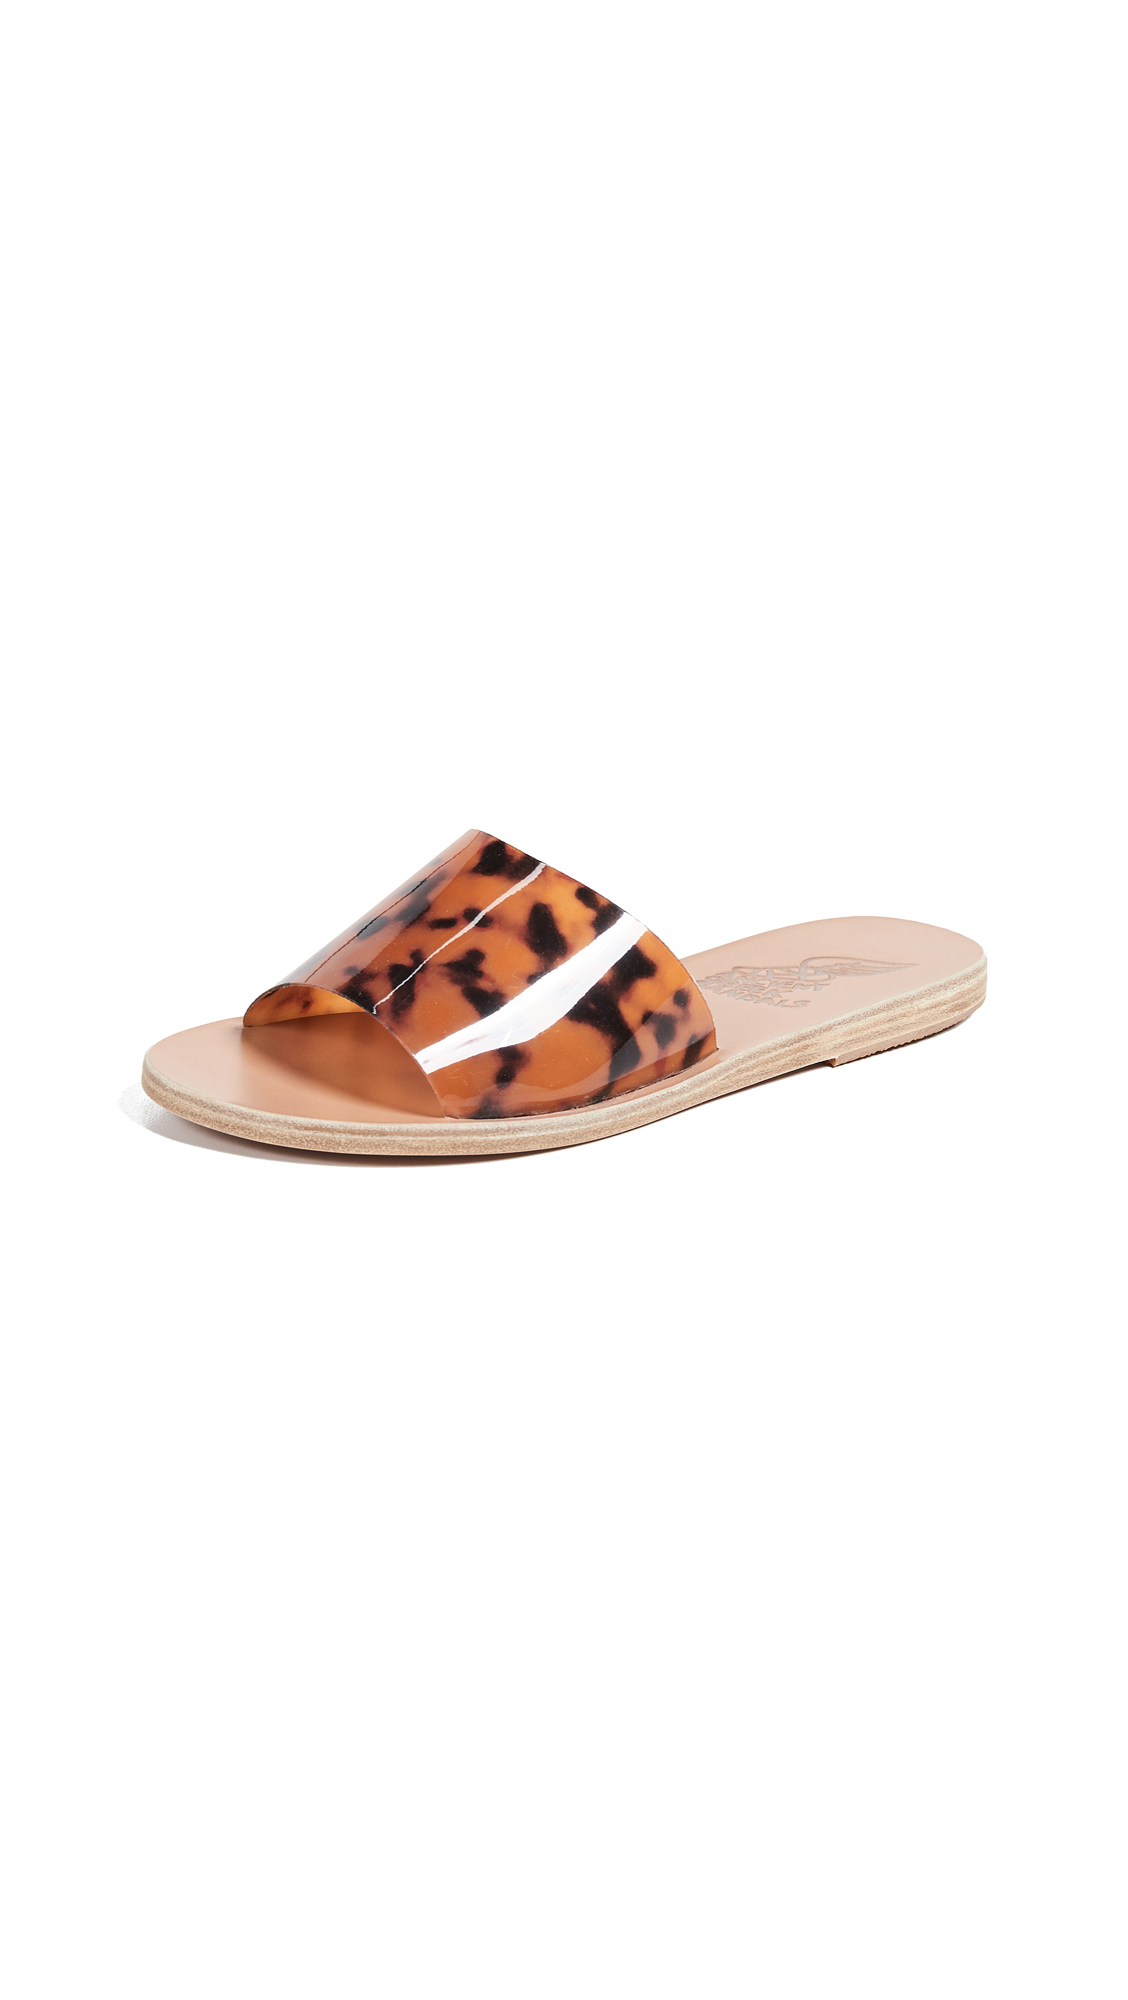 Ancient Greek Sandals Taygete Vinyl Slides - Tortoishell